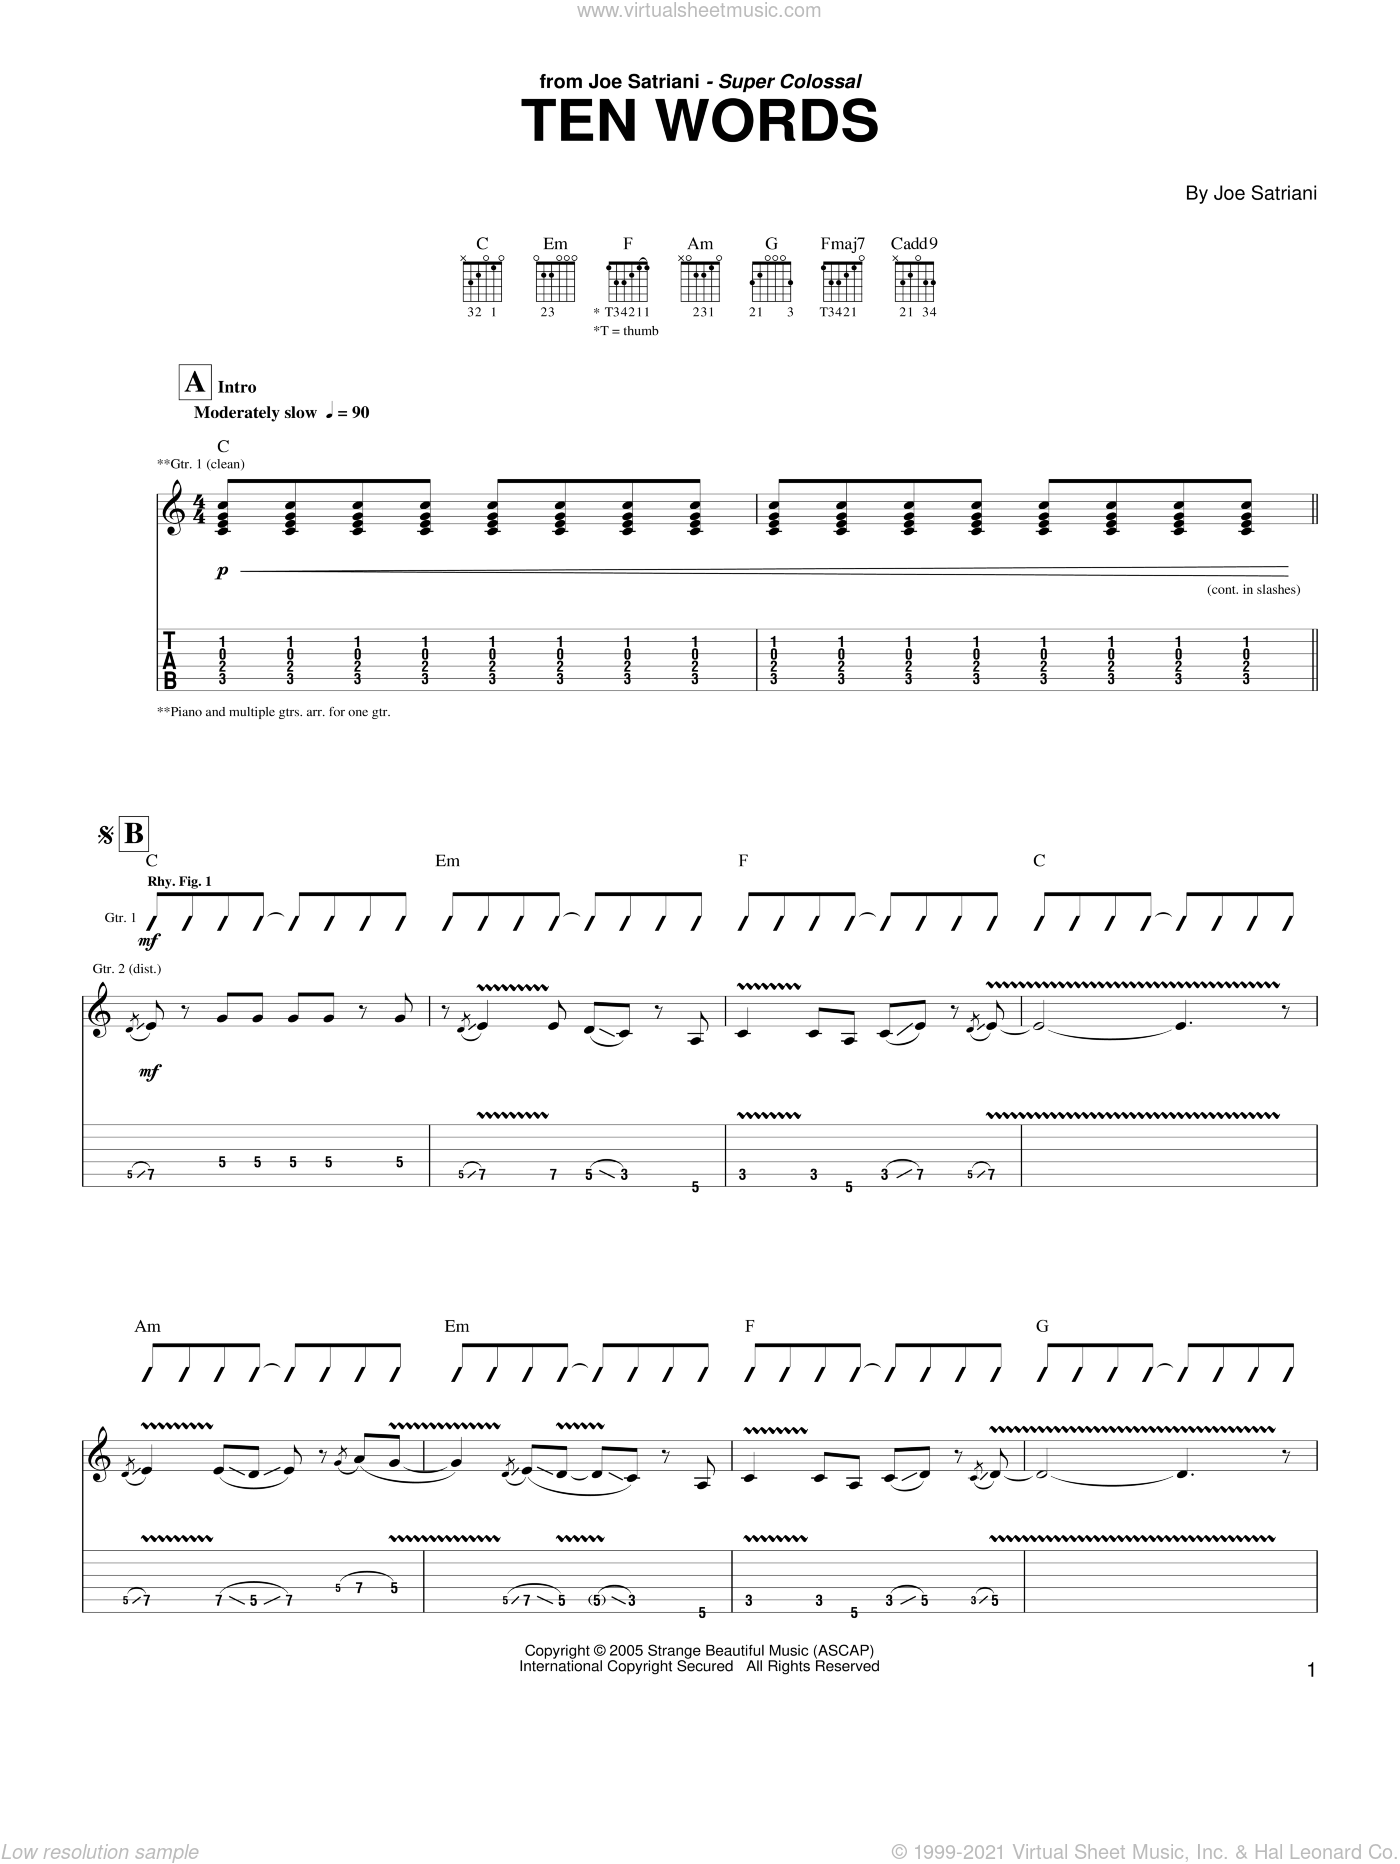 Ten Words sheet music for guitar (tablature) by Joe Satriani, intermediate skill level